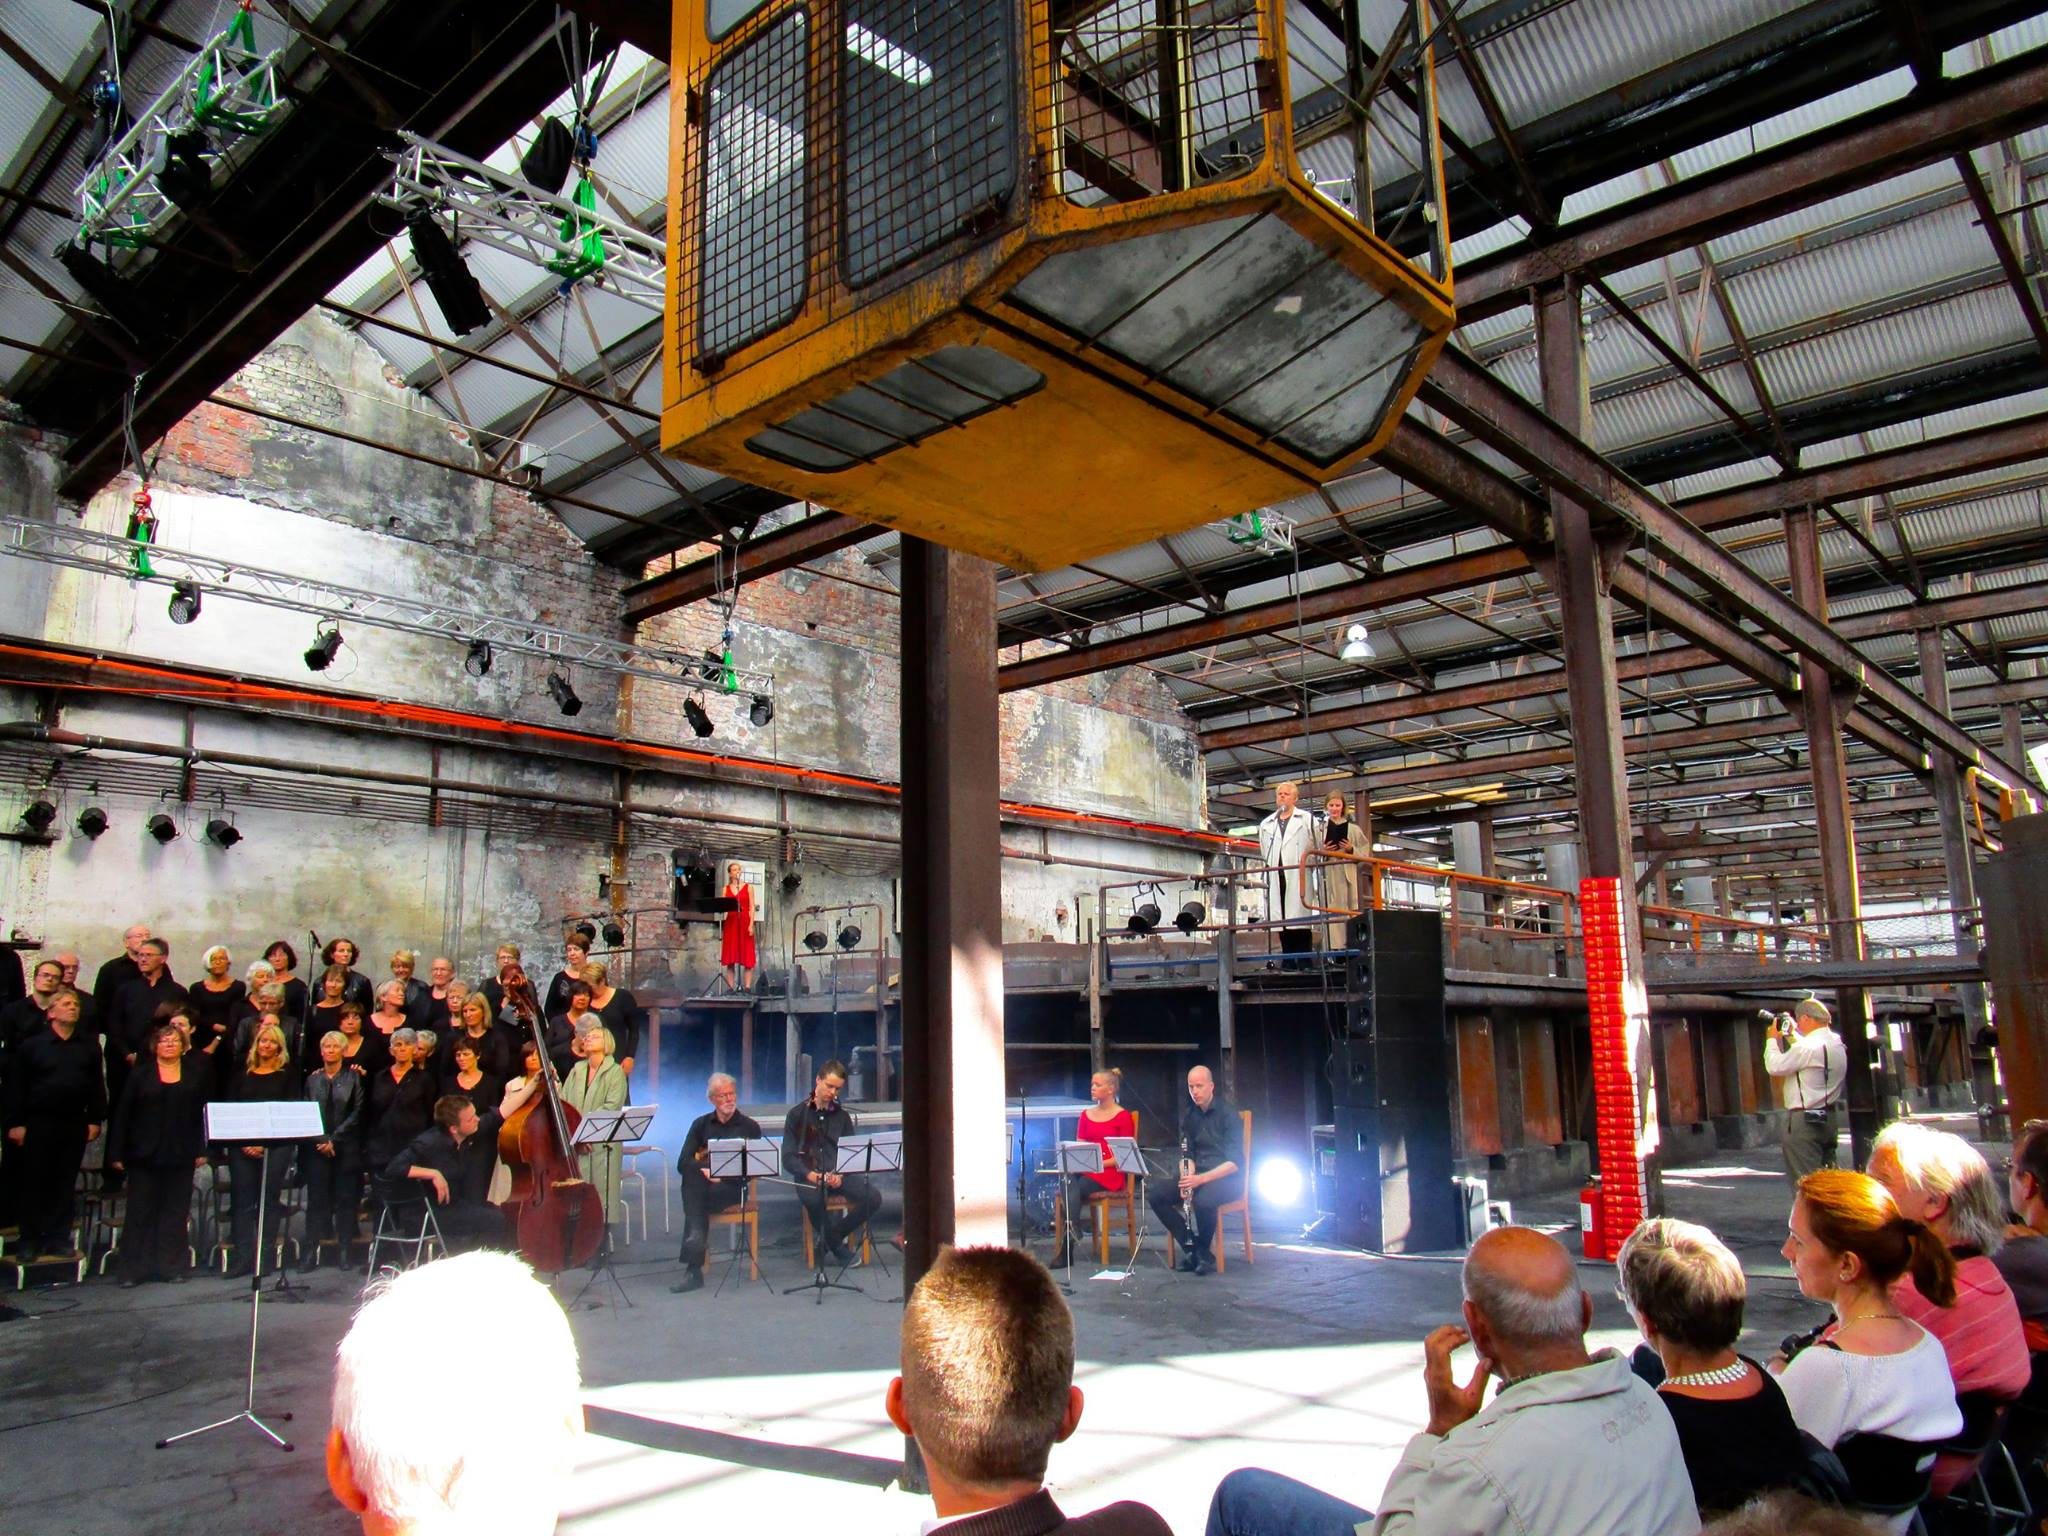 Hardanger Music Festival in the Cyanamide Factory. © Morten Eikeland